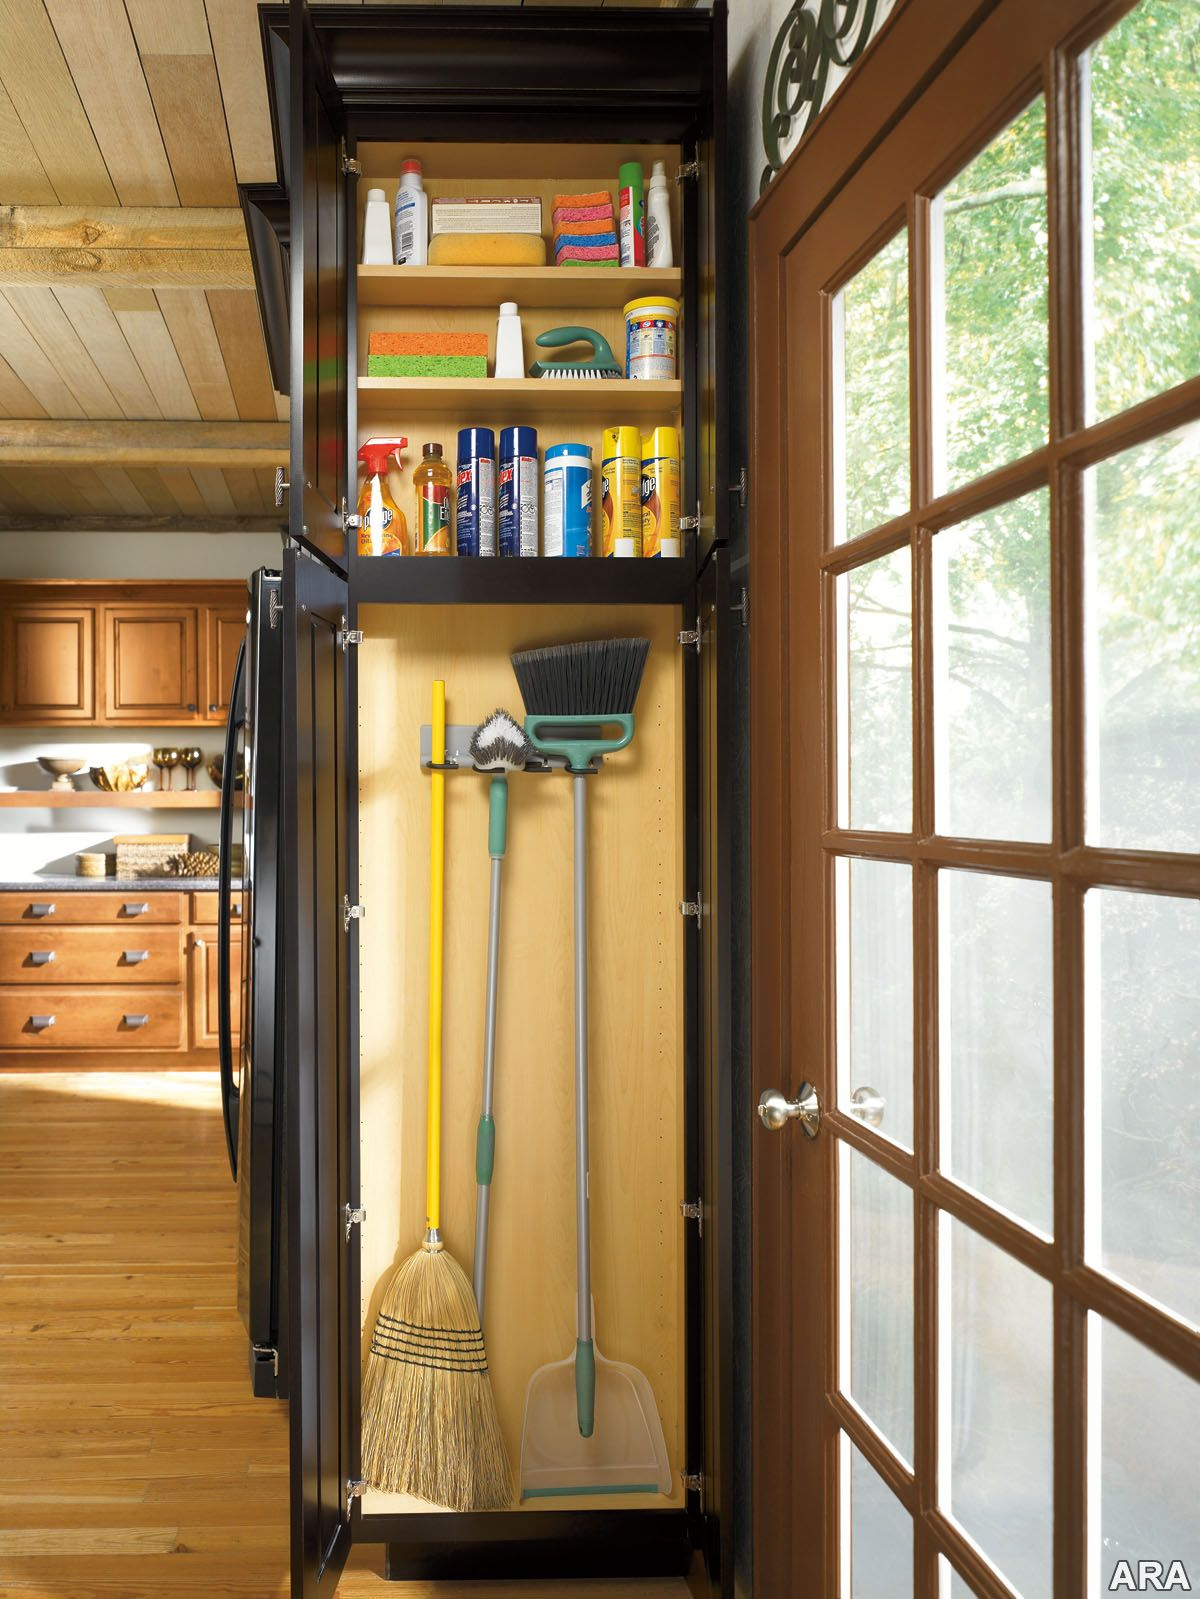 1 Make Four Piles The Great Closet Clean Out Is Your: Cleaning Cabinets, Kitchen Storage